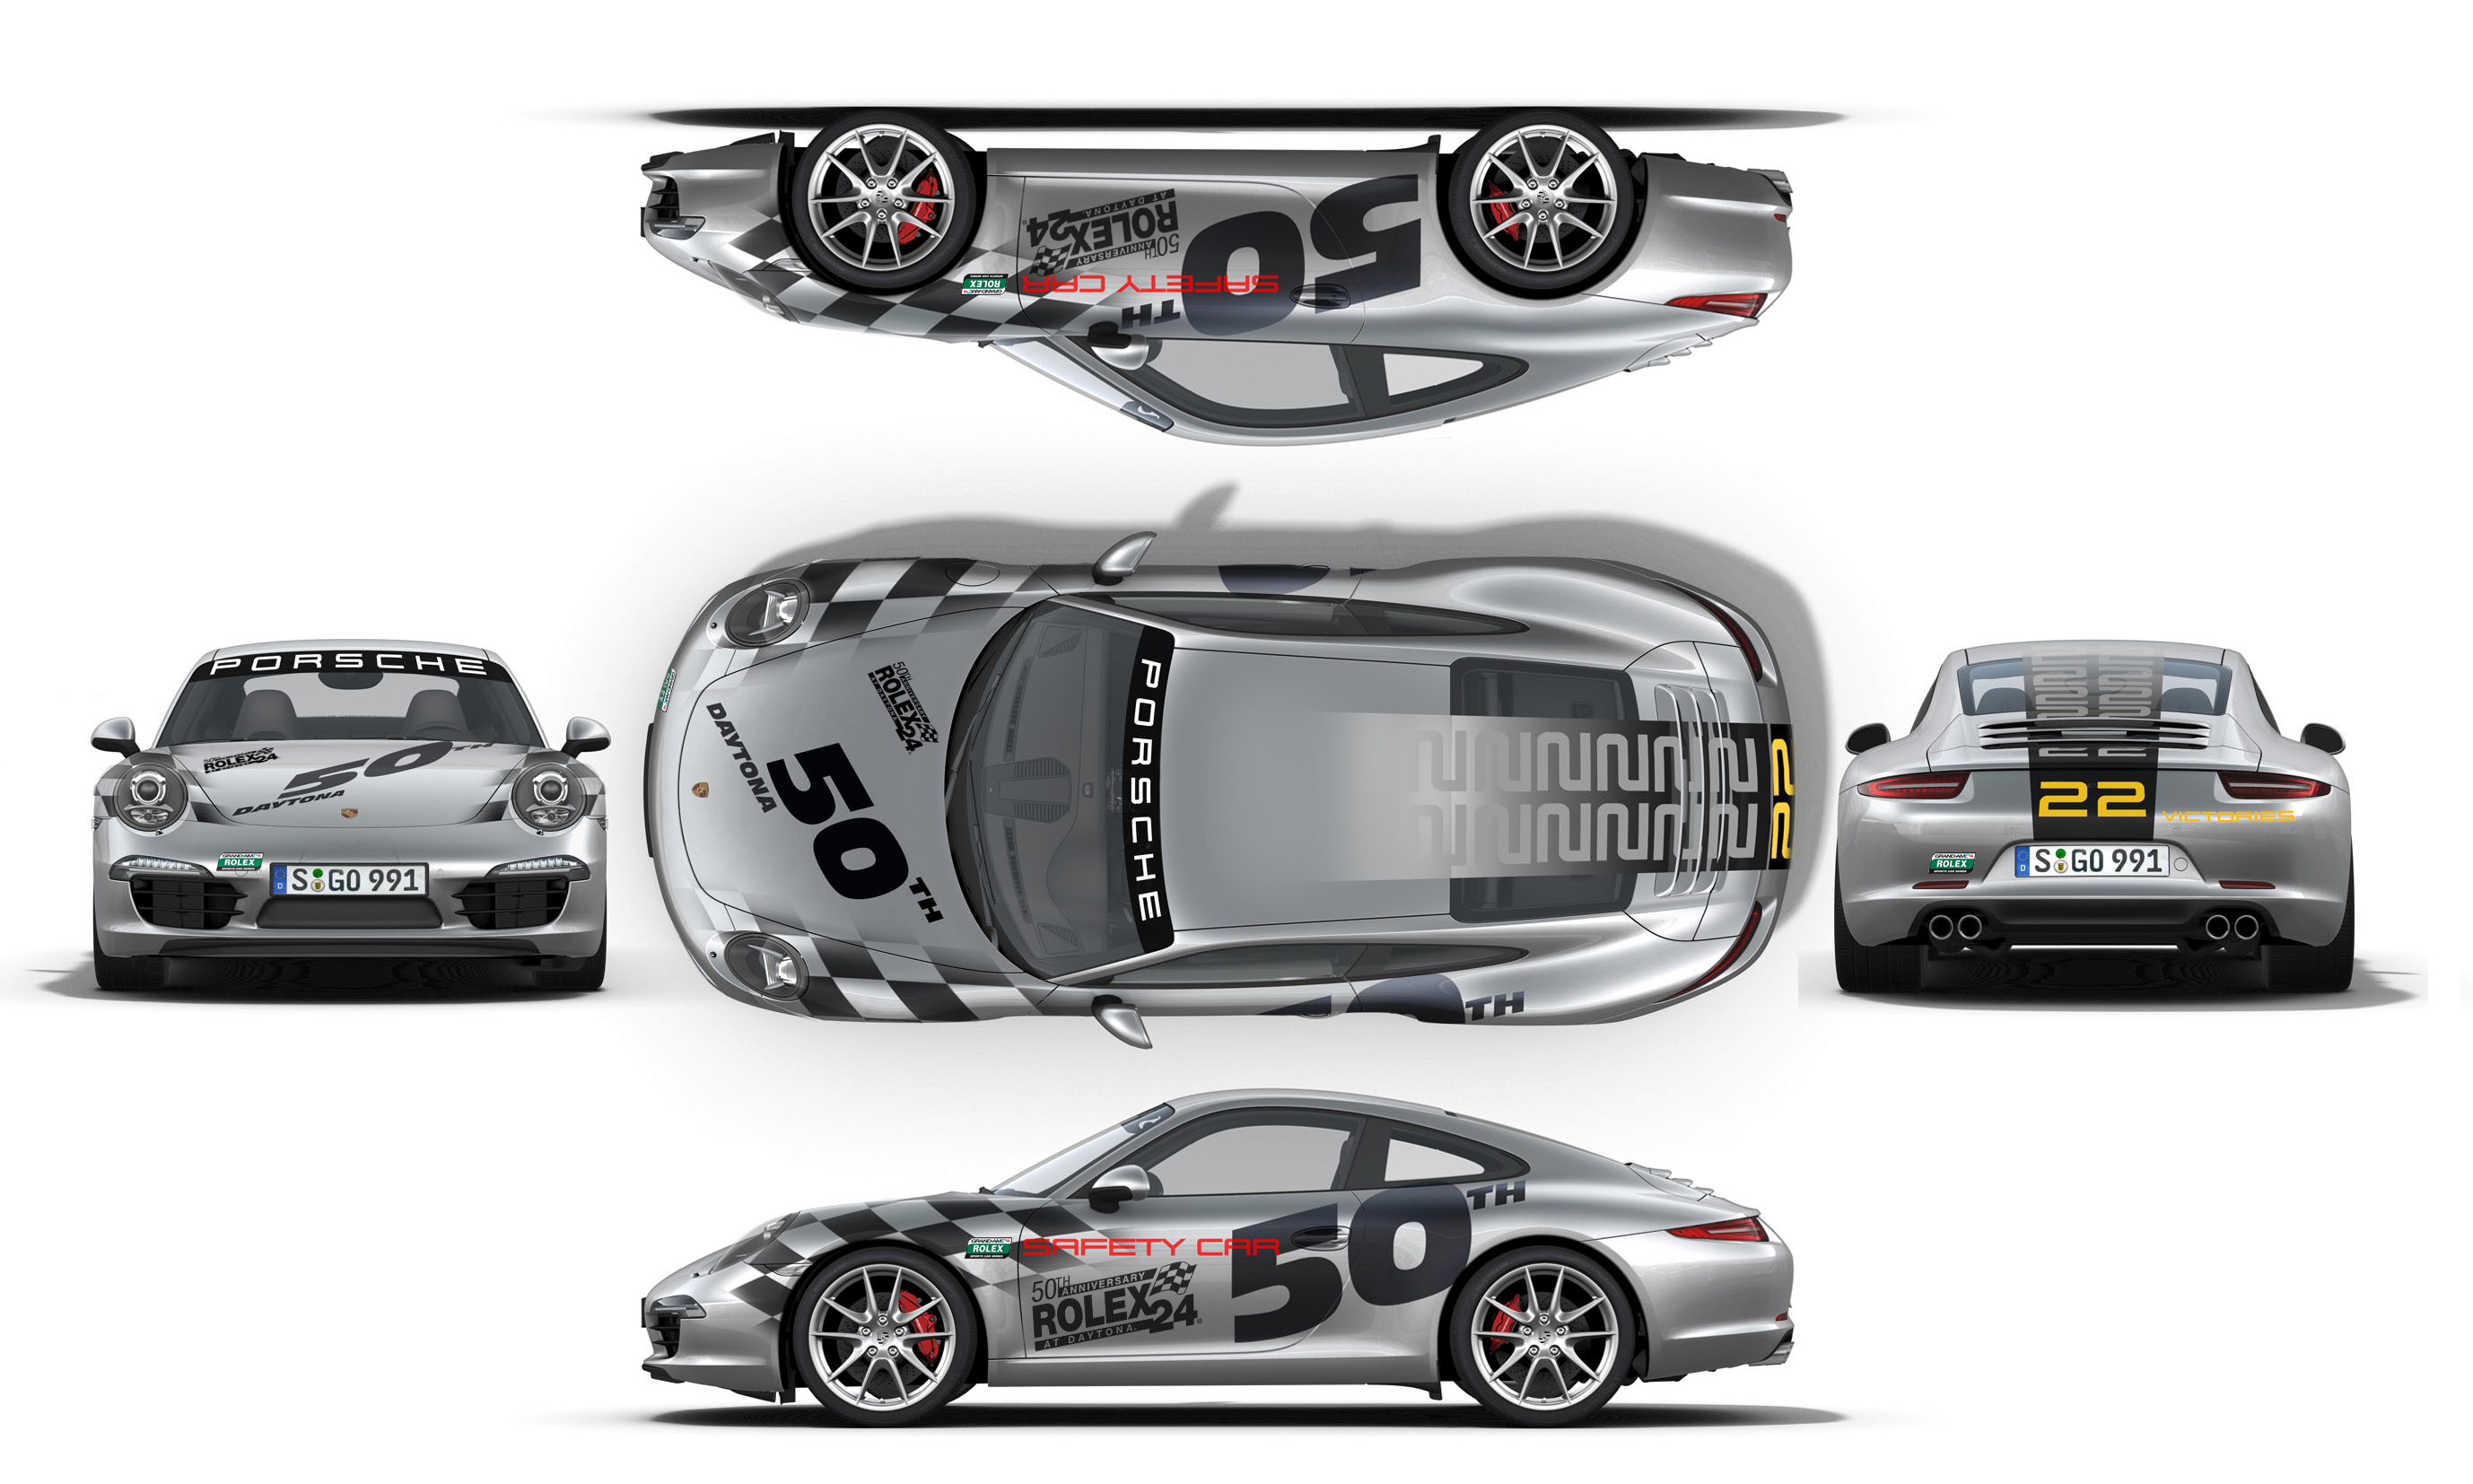 New Seventh-Generation Porsche 911 to Kick Off 50th Anniversary Rolex 24 As Official Pace Car